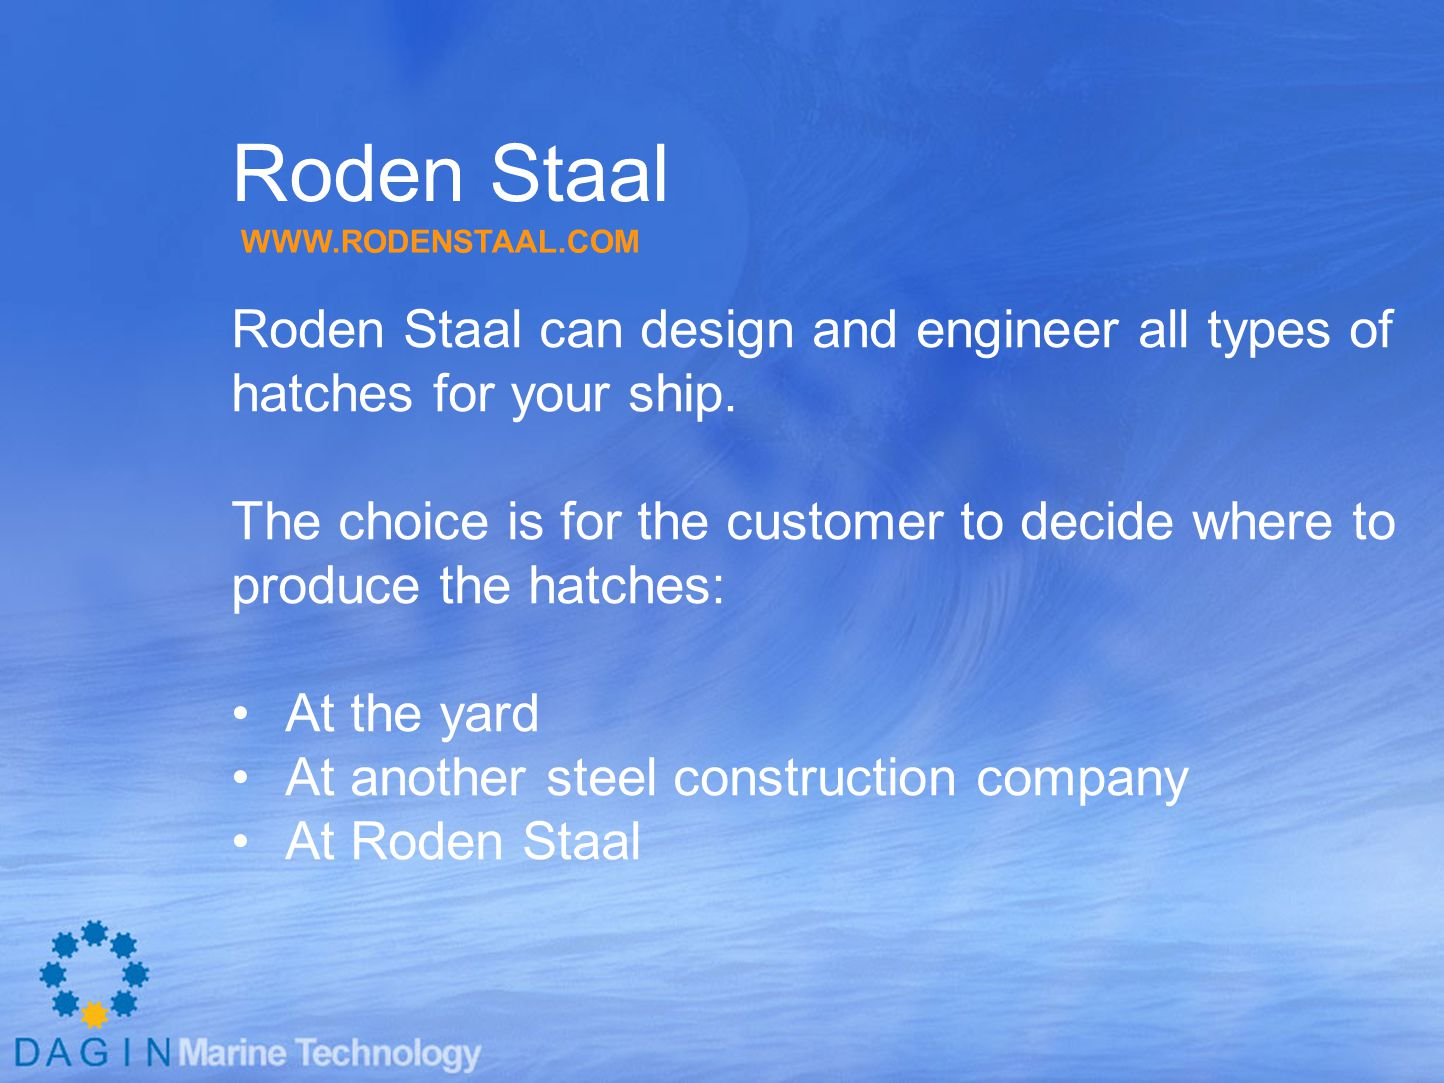 Roden Staal Roden Staal can design and engineer all types of